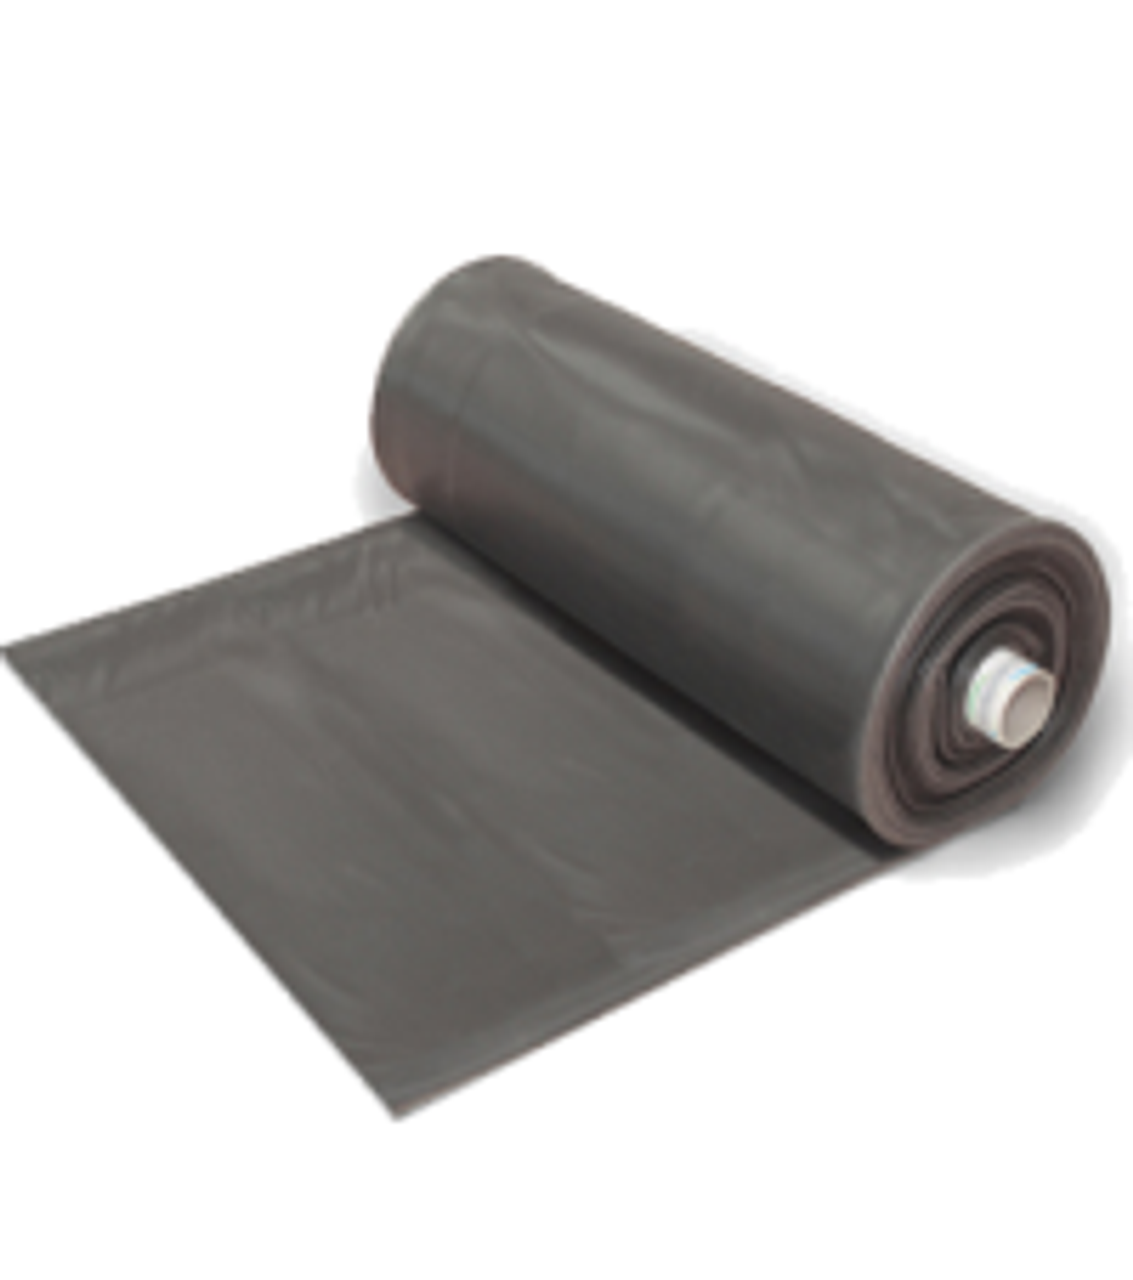 GORDON LOW FIRESTONE 14FT X 16FT 1MM RUBBER POND LINER WITH 20 YEAR GUARANTEE